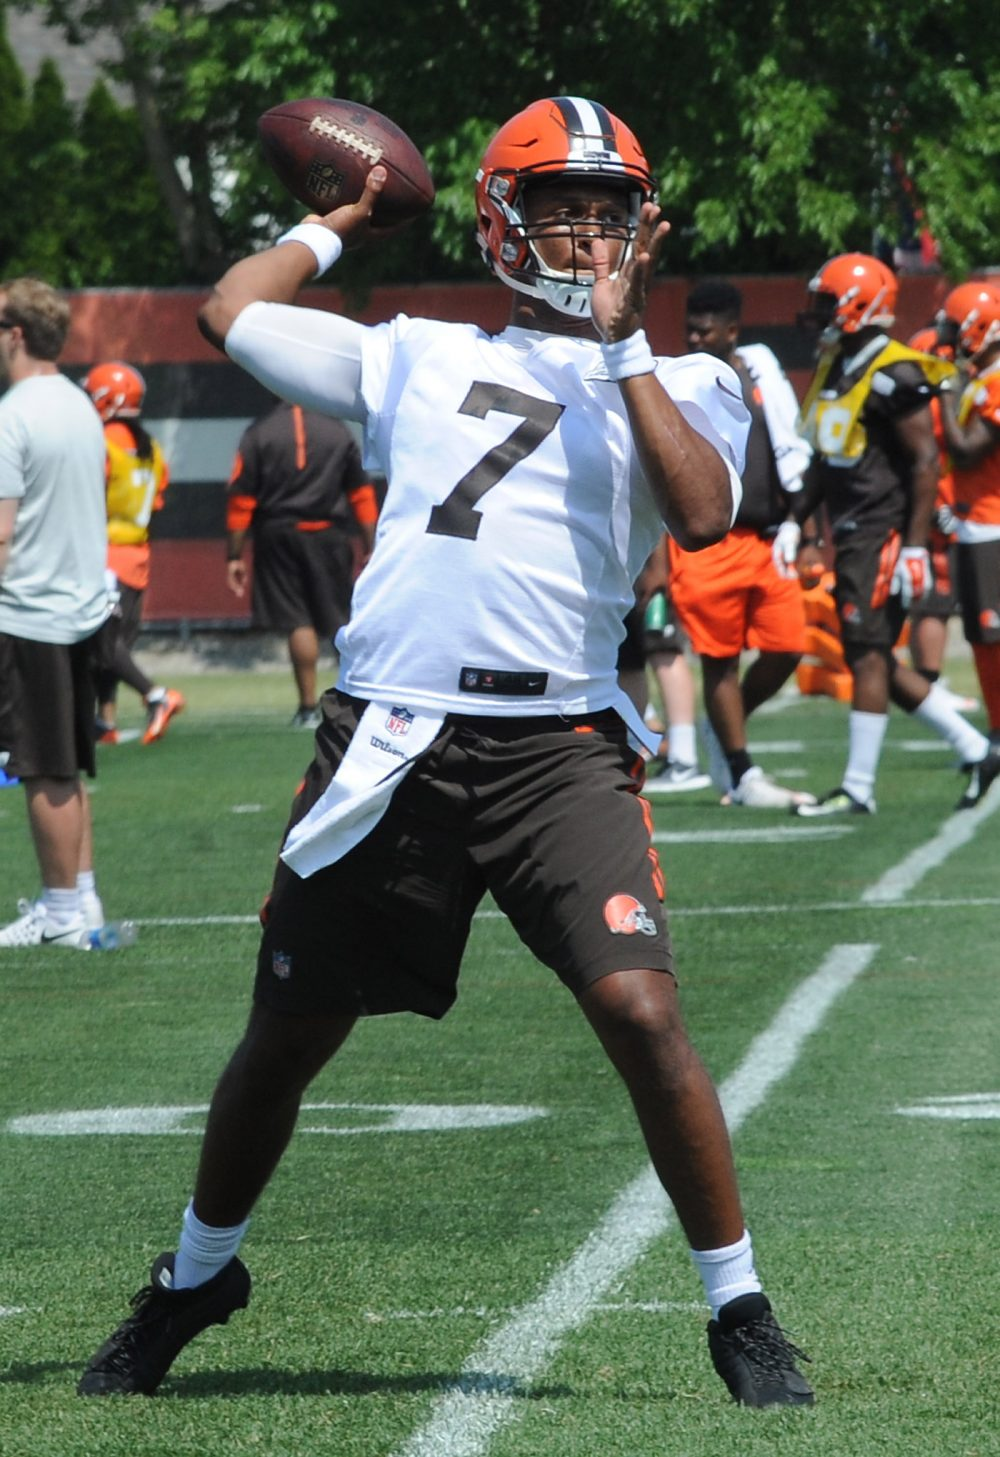 BEREA -- Quarterbacks coach David Lee gets excited when rookie DeShone Kizer drives the first-team offense during practice. And when his strong arm connects on a deep throw. And when he gets outside the pocket and gains yards.